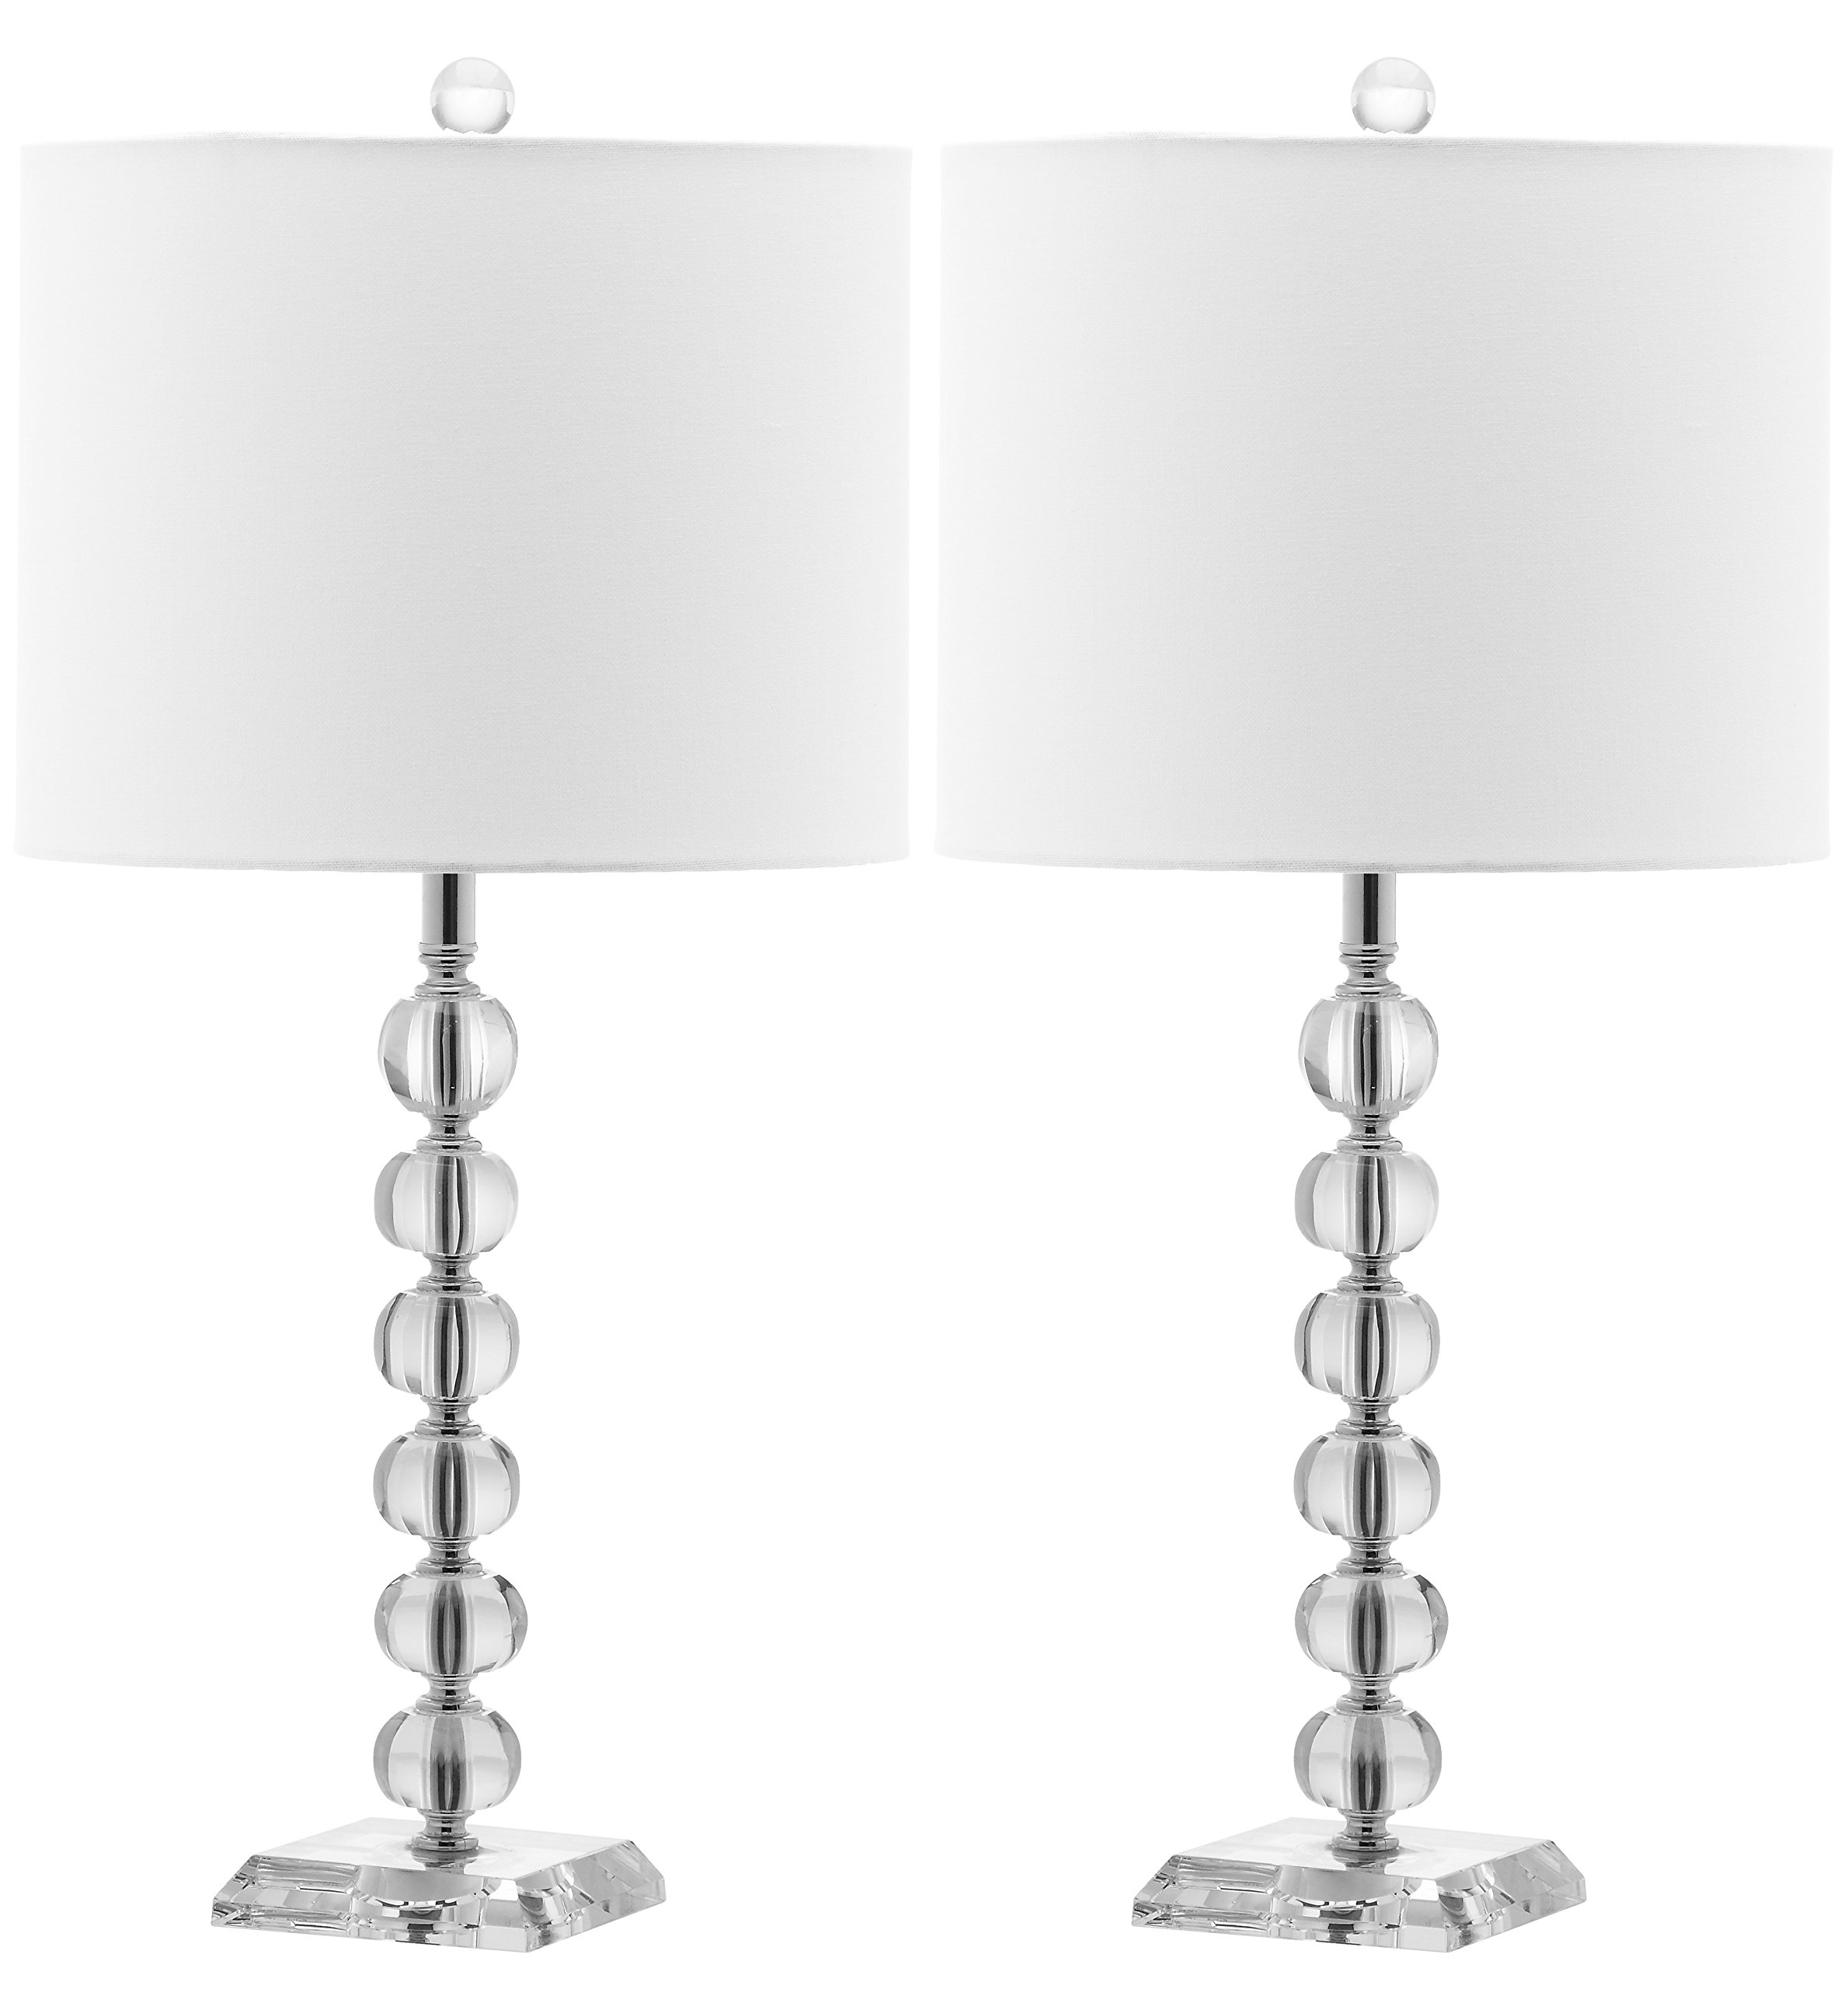 Safavieh Lighting Collection Victoria Crystal Ball 24-inch Table Lamp (Set of 2) by Safavieh